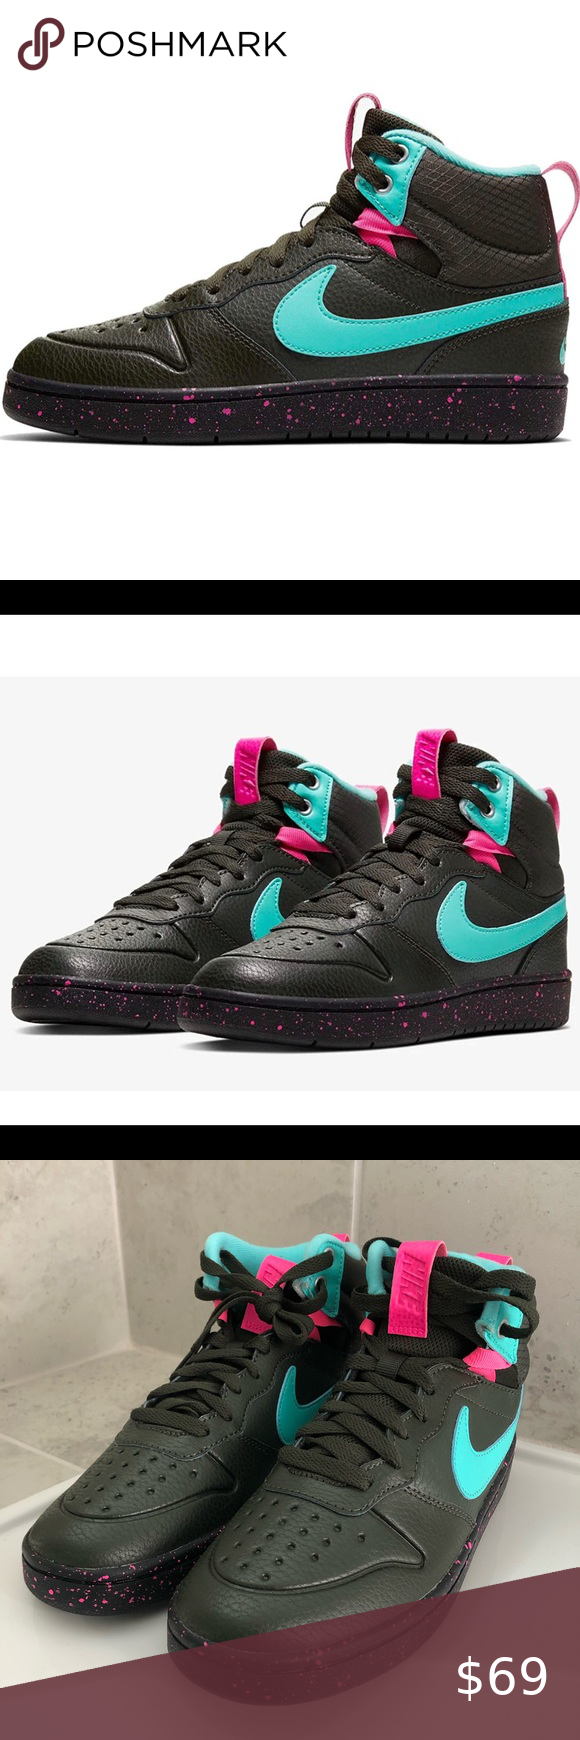 GS) - Size 5.5 Youth in 2020 | Nike